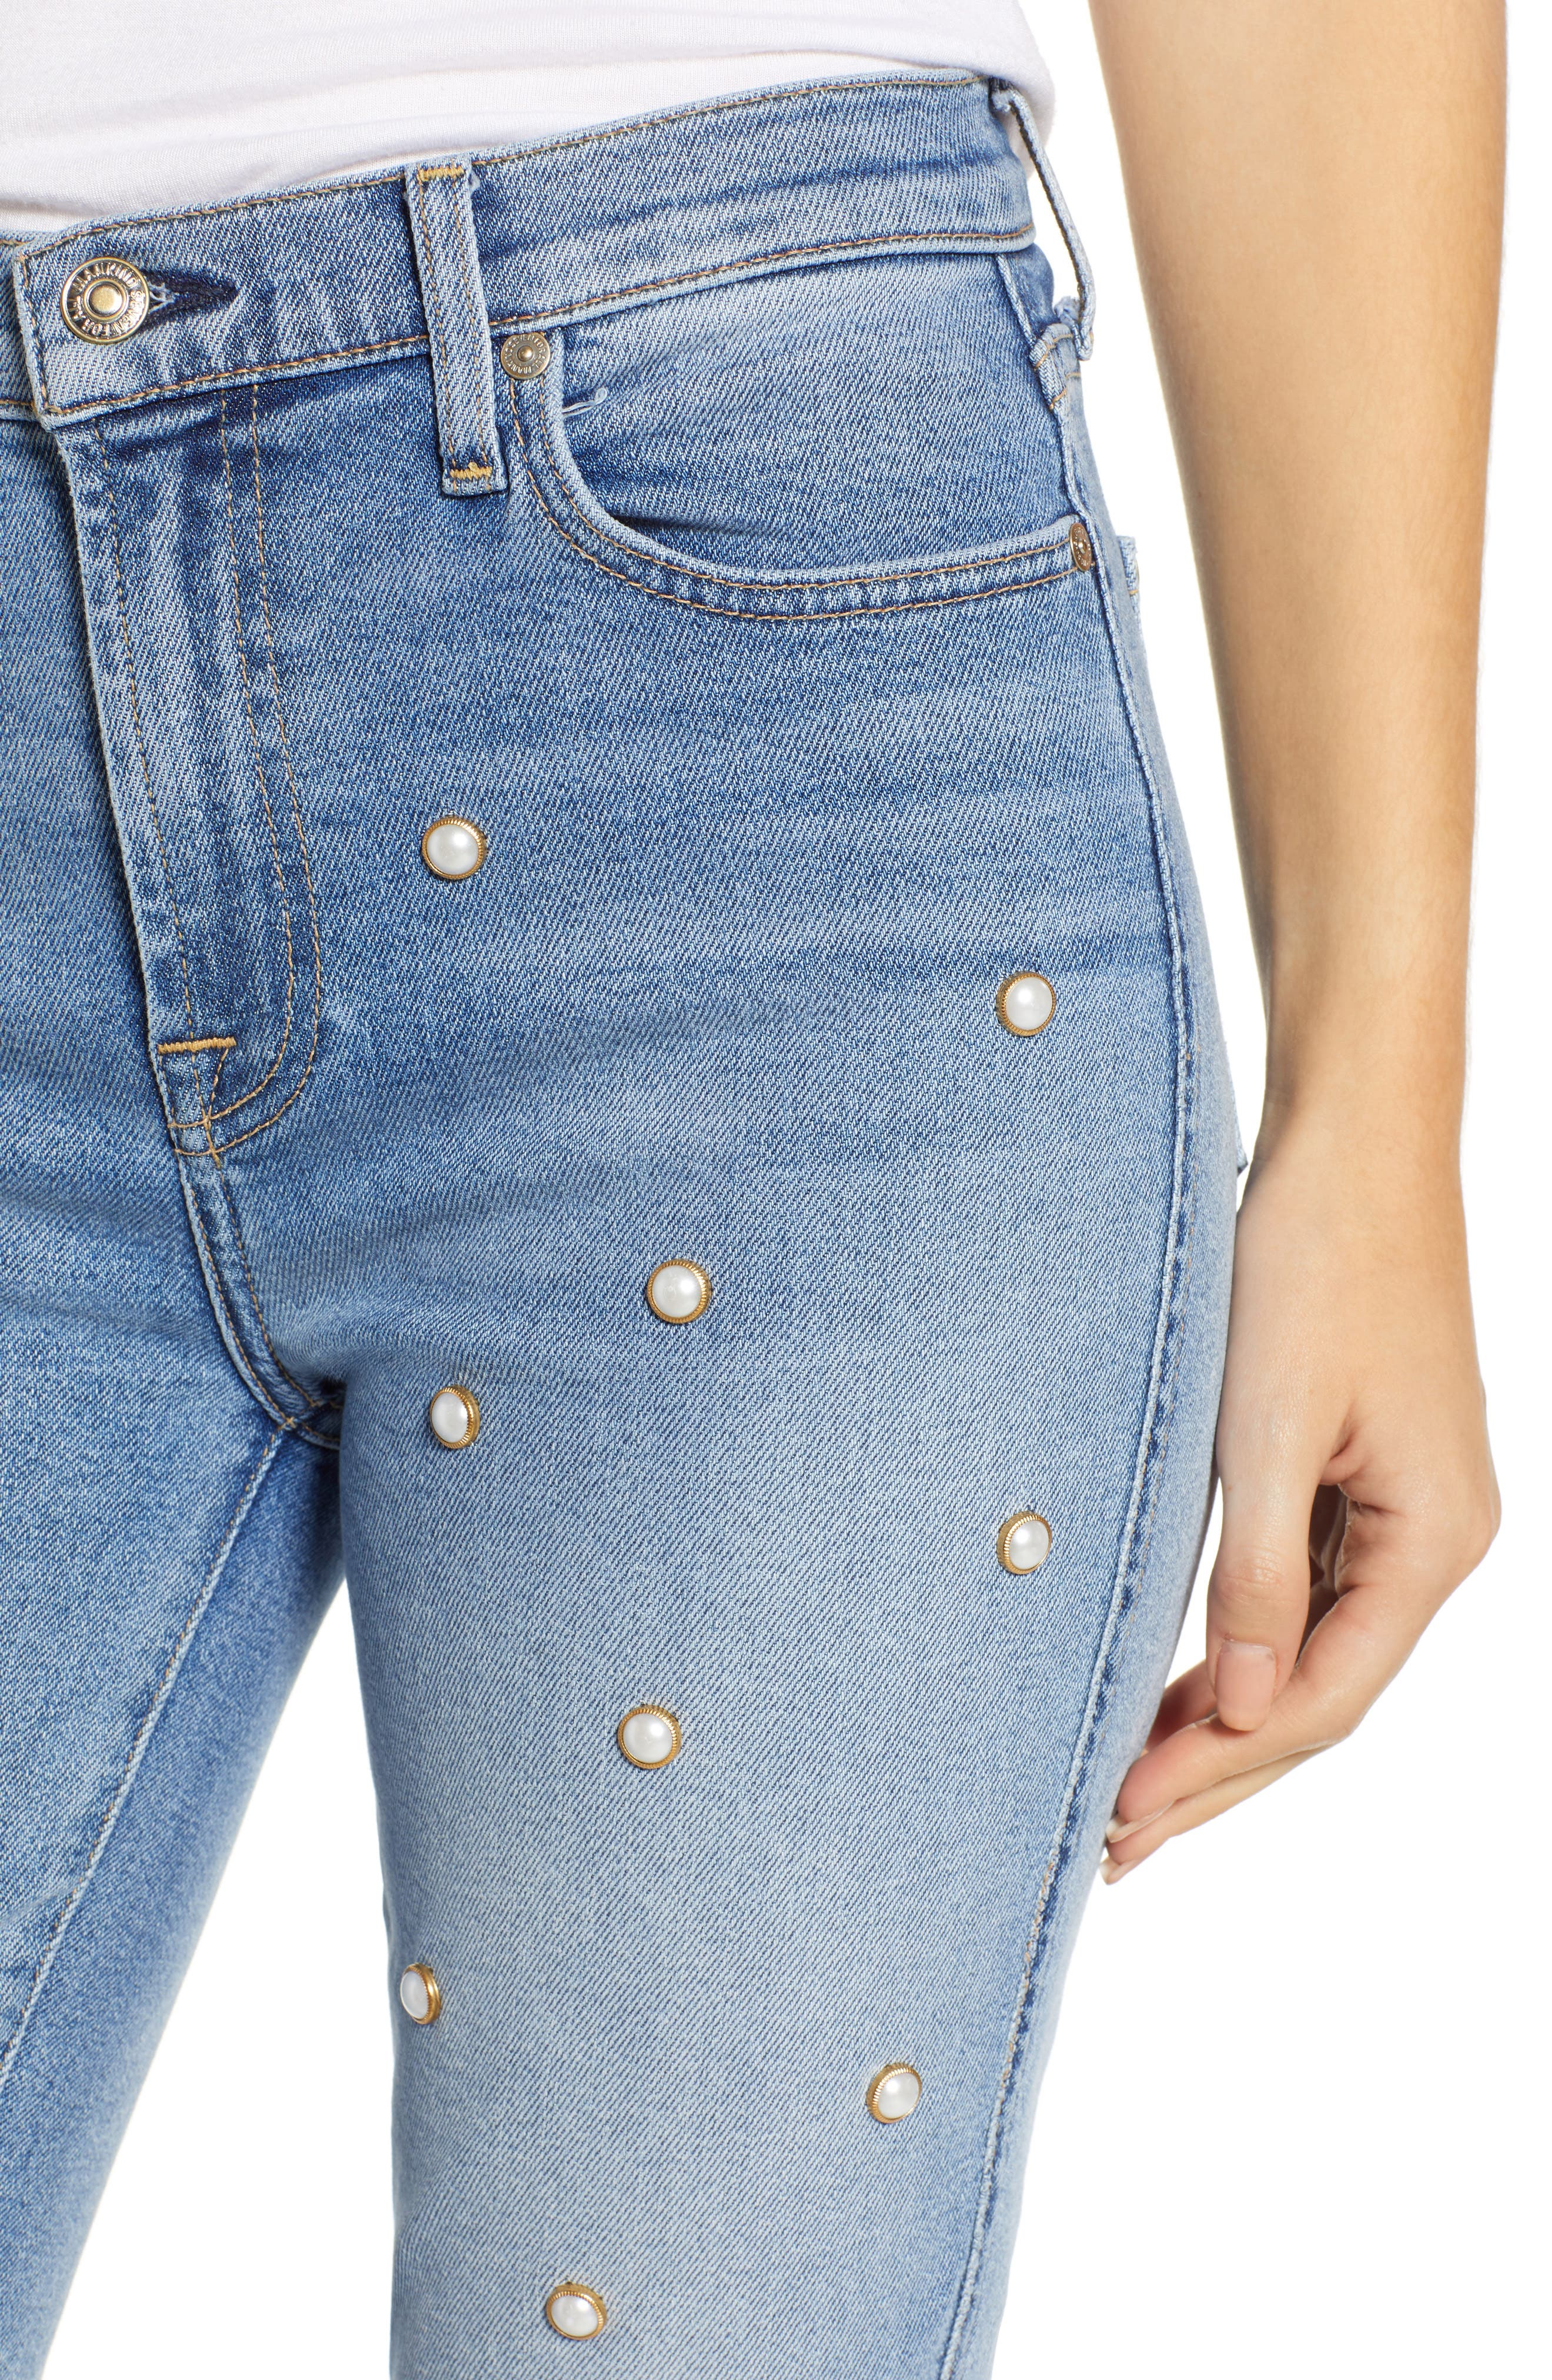 Edie Faux Pearl Detail Ankle Jeans,                             Alternate thumbnail 4, color,                             LUXE VINTAGE FLORA